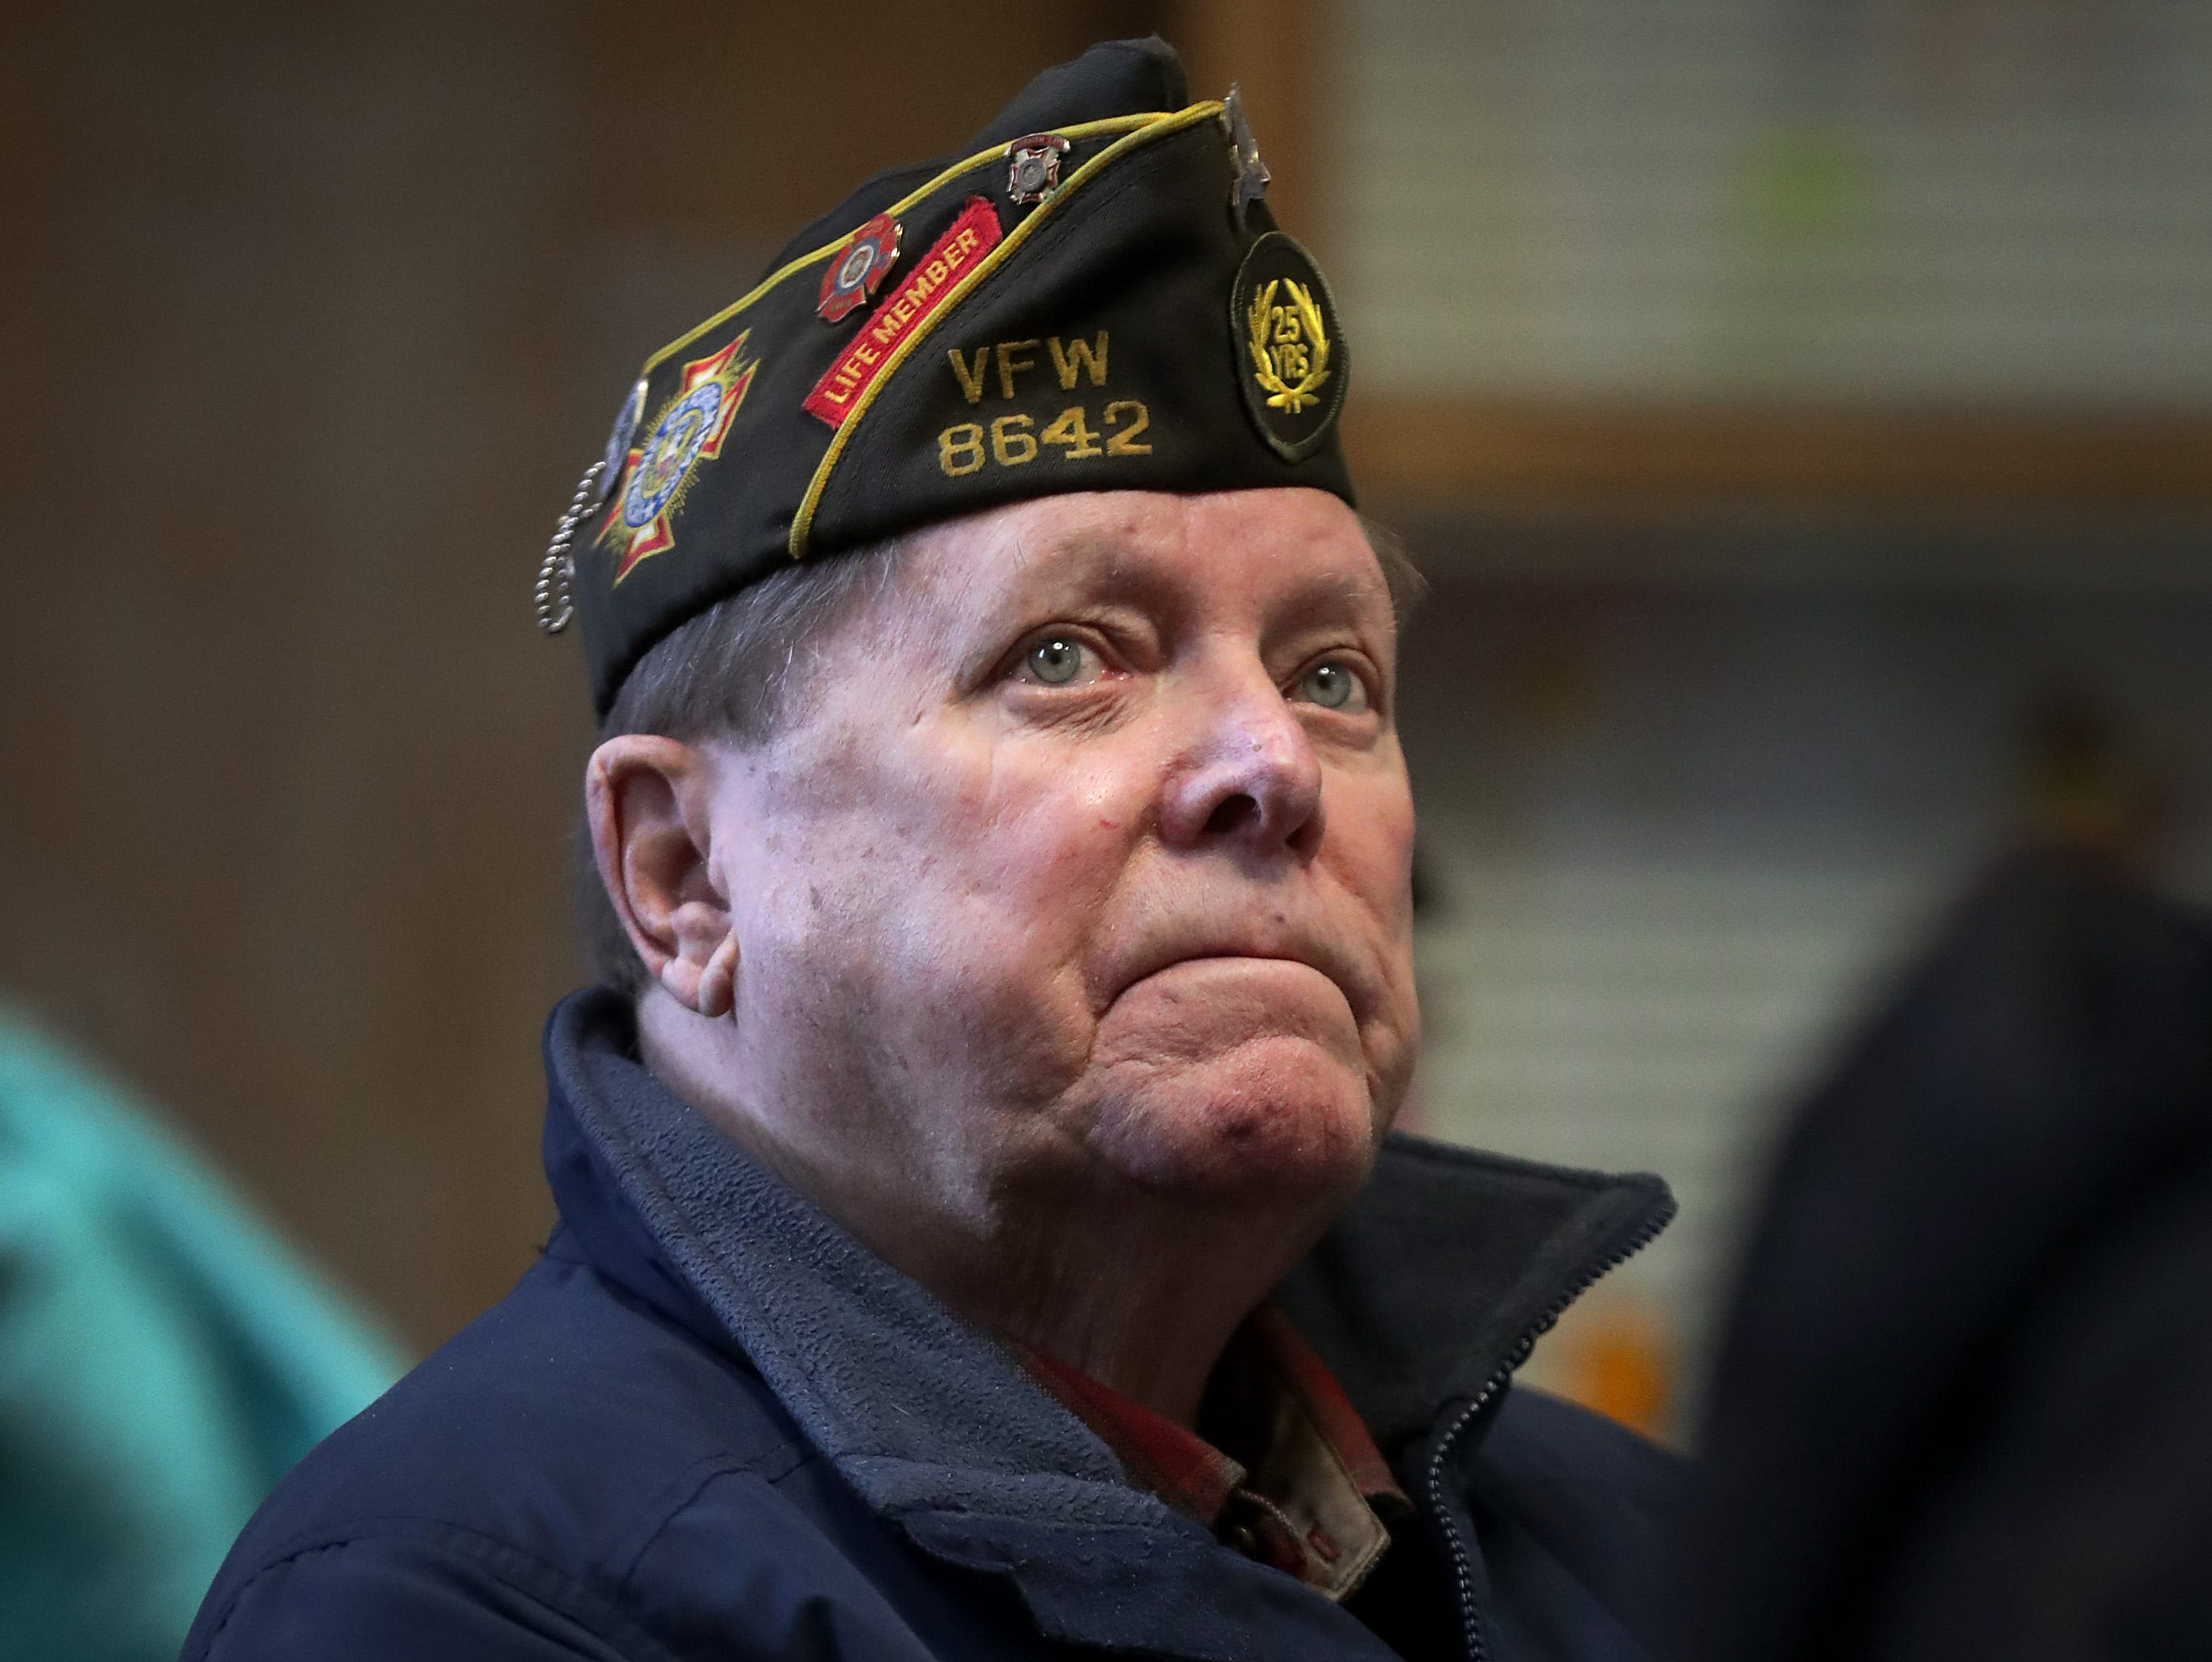 Richard Kerrigan, U.S. Navy Korea, during the Outagamie County Veterans Day Service on Sunday, Nov. 11, 2018, in Appleton, Wis. The service, in part, commemorated the 100th anniversary of the end of WW I.